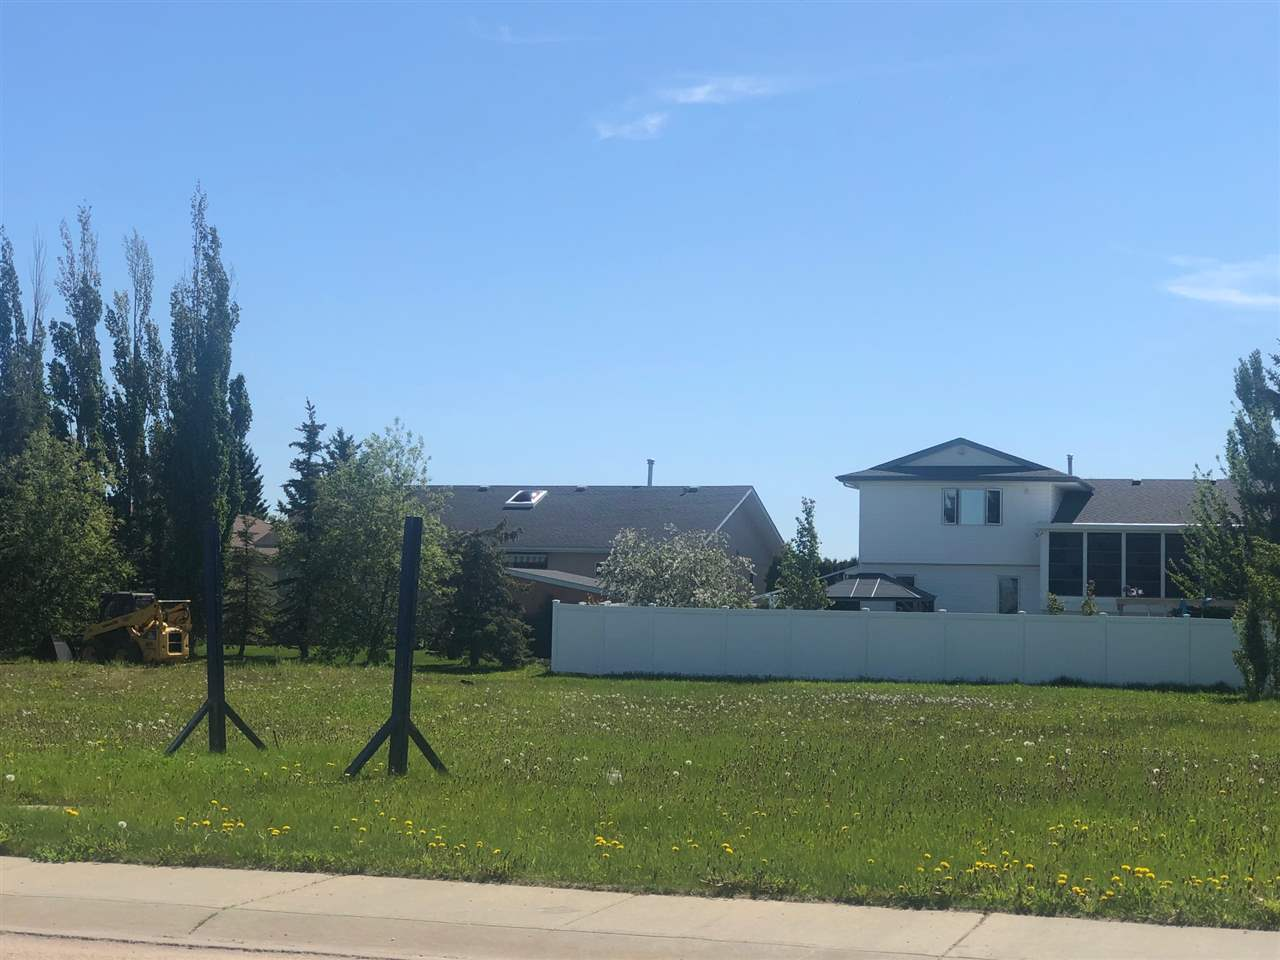 PRIME LOTS: PRICED AT $77,500 ON CHOICE:  Lot 21 is 8,121 sq ft  Lot 22 is 8,050 sq ft Lot 23 is 8,150 sq ft   The average lot in Westlock is 6,000 sq ft so these lots are exceptional and priced to sell. They are located at the north end of Westlock Elementary School on a quiet street. Walking distance to Apollo Restaurant and convenience store. Priced to sell - act fast while the rates are so low!!